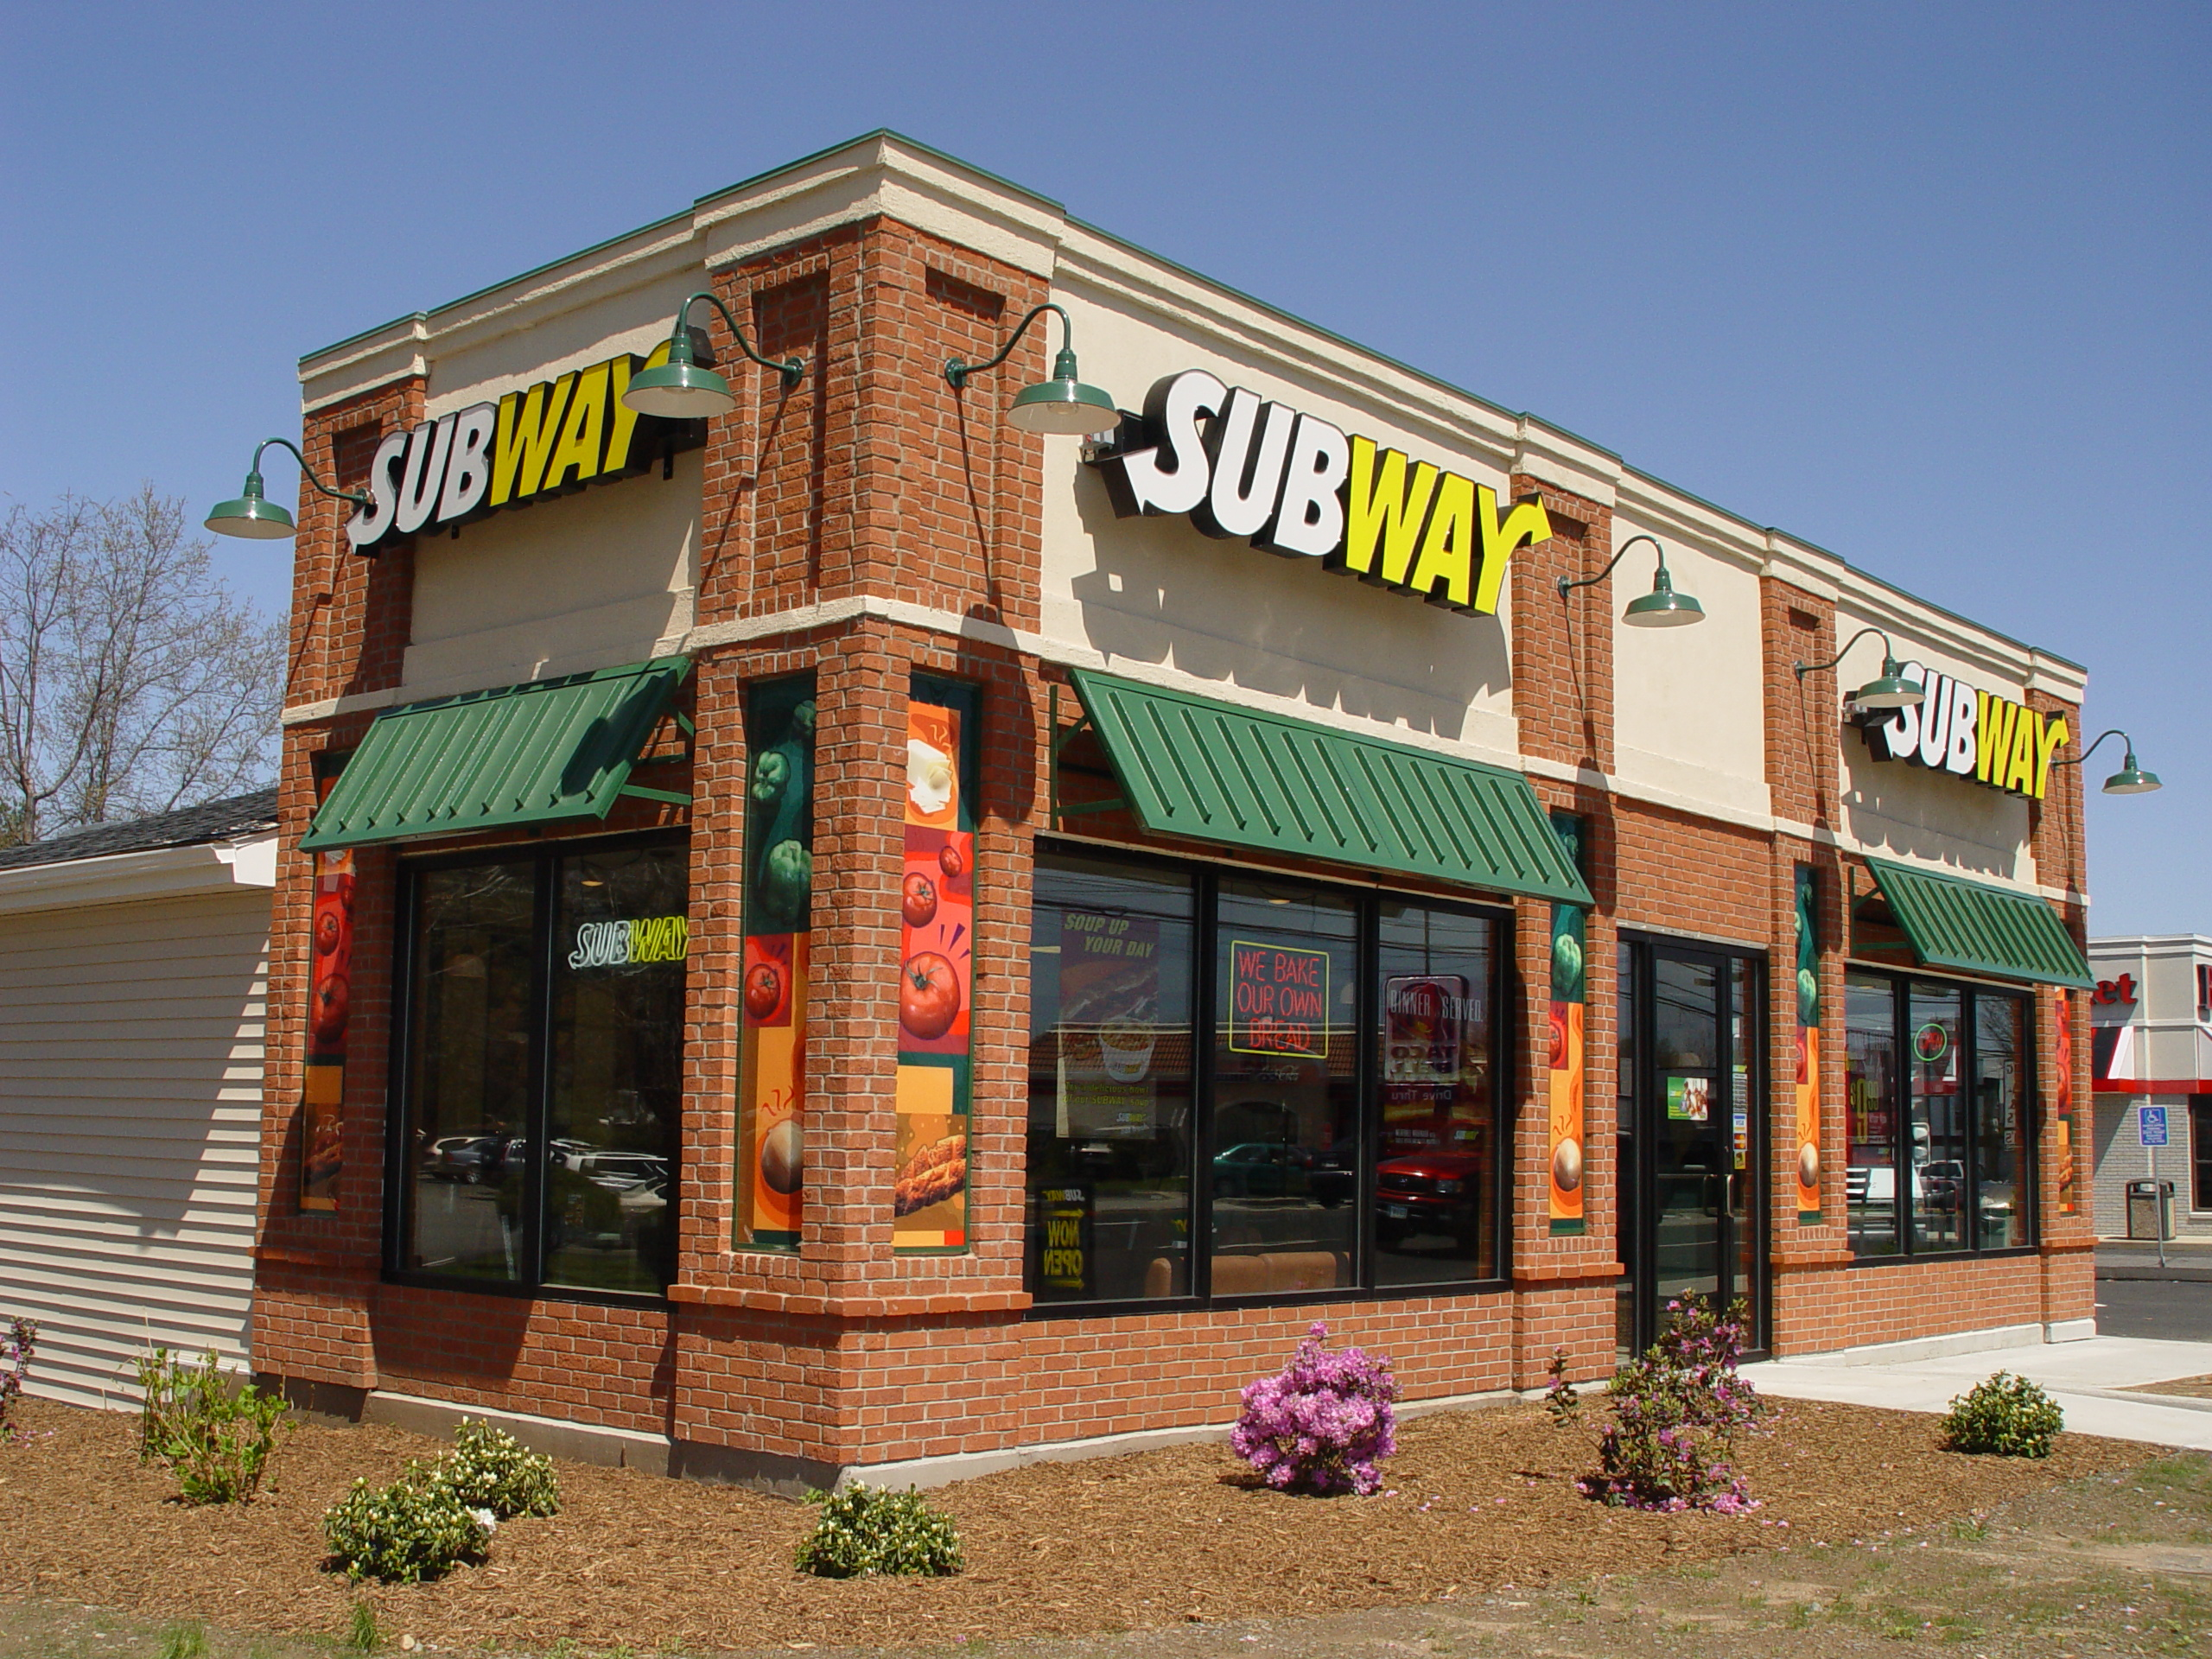 Subway, Mayville MI